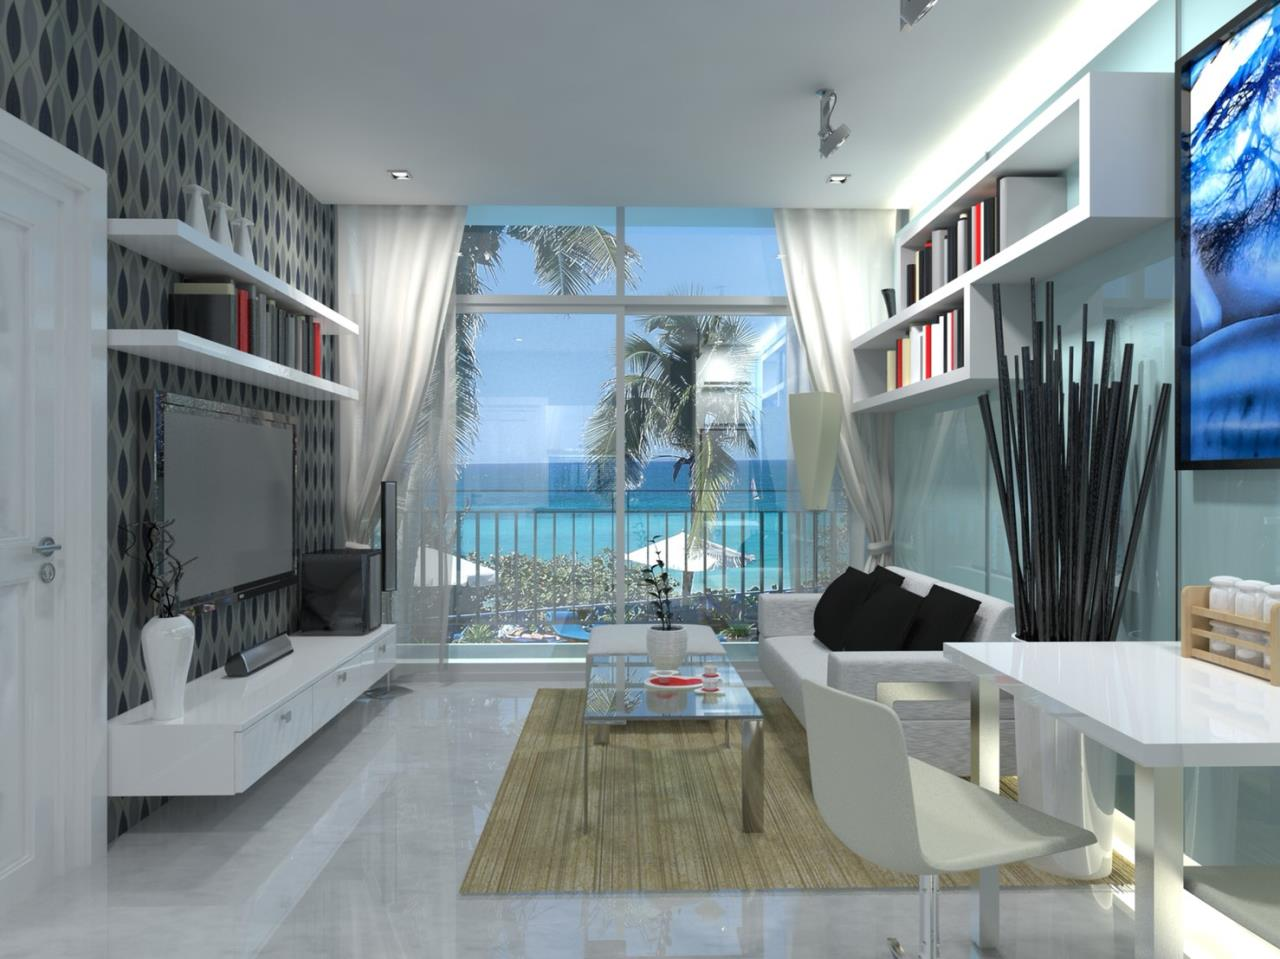 Signature Realty ( Thailand ) Co Ltd Agency's Furnished 1bedroom 46 sq.m condo with jacuzzi floor 21-31 at The Grand Jomtein Beach Pattaya 28